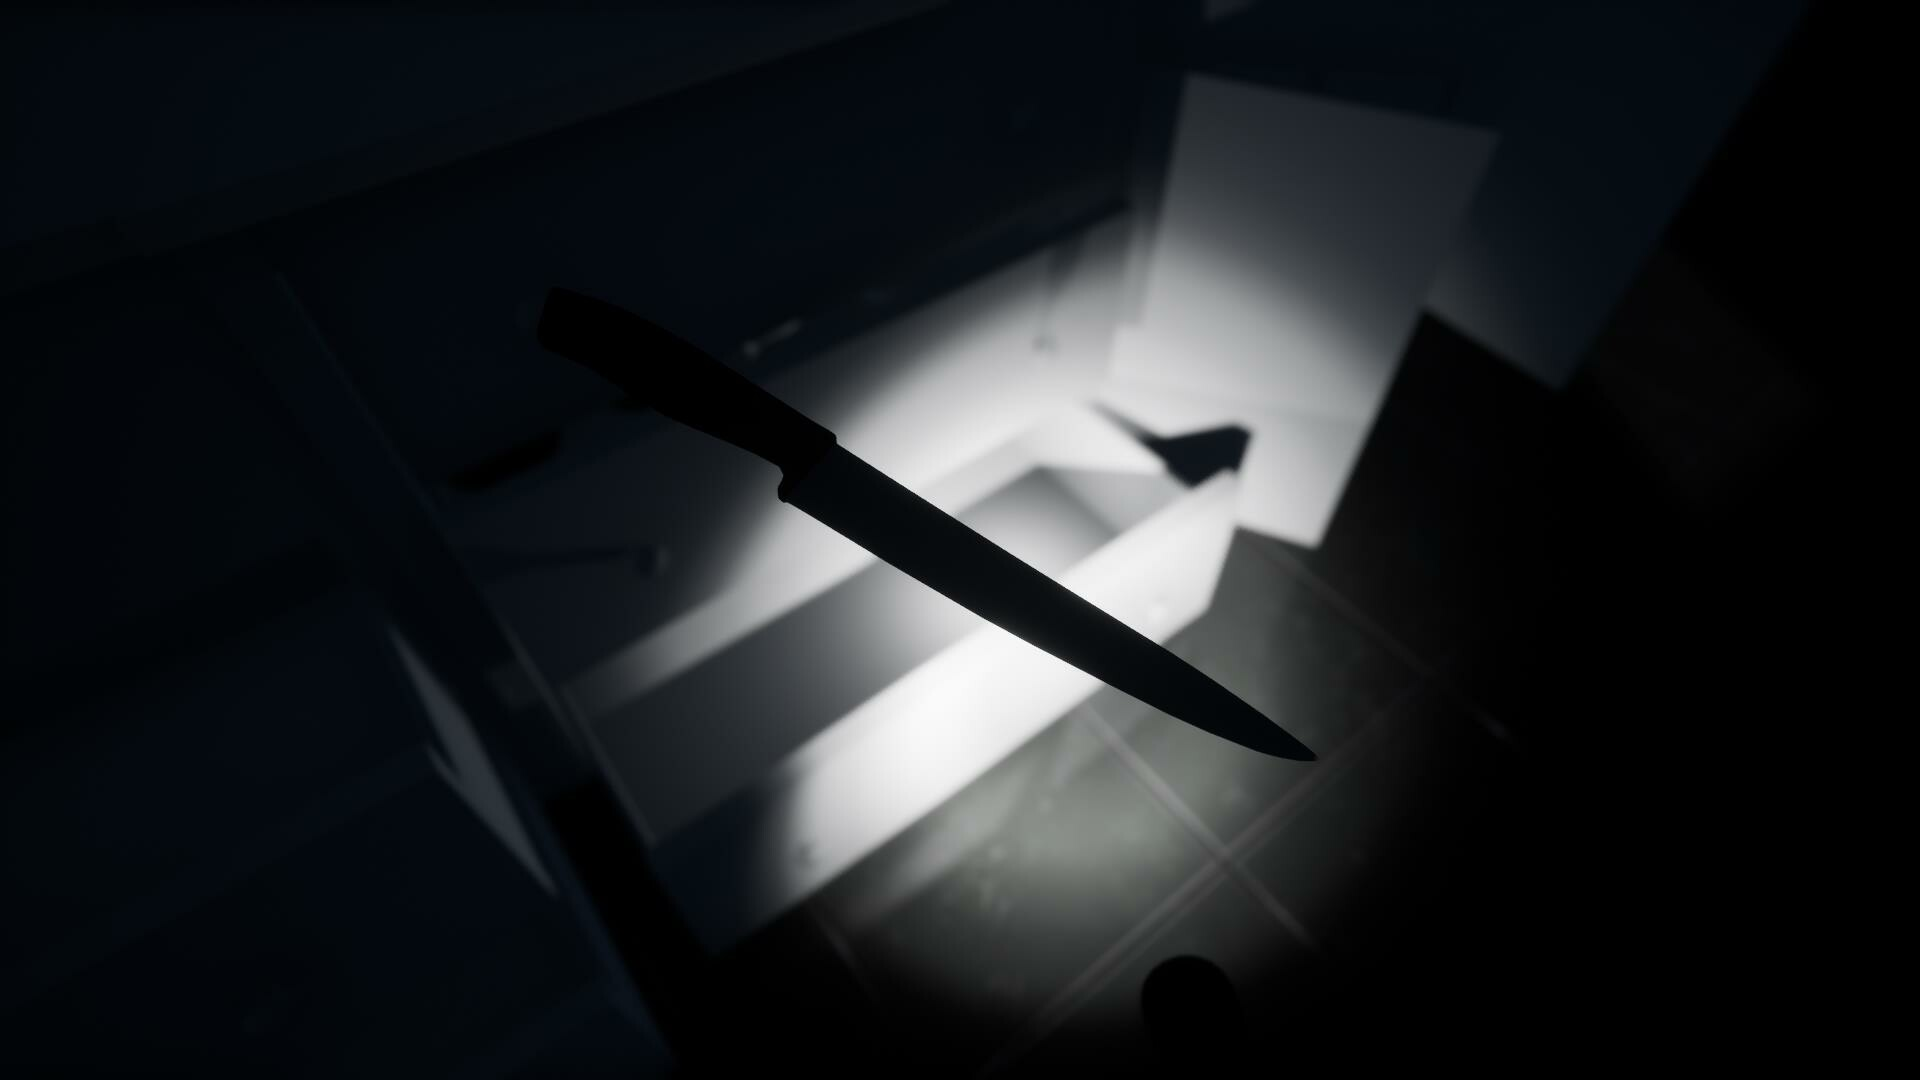 a foreboding knife being inspected by the player